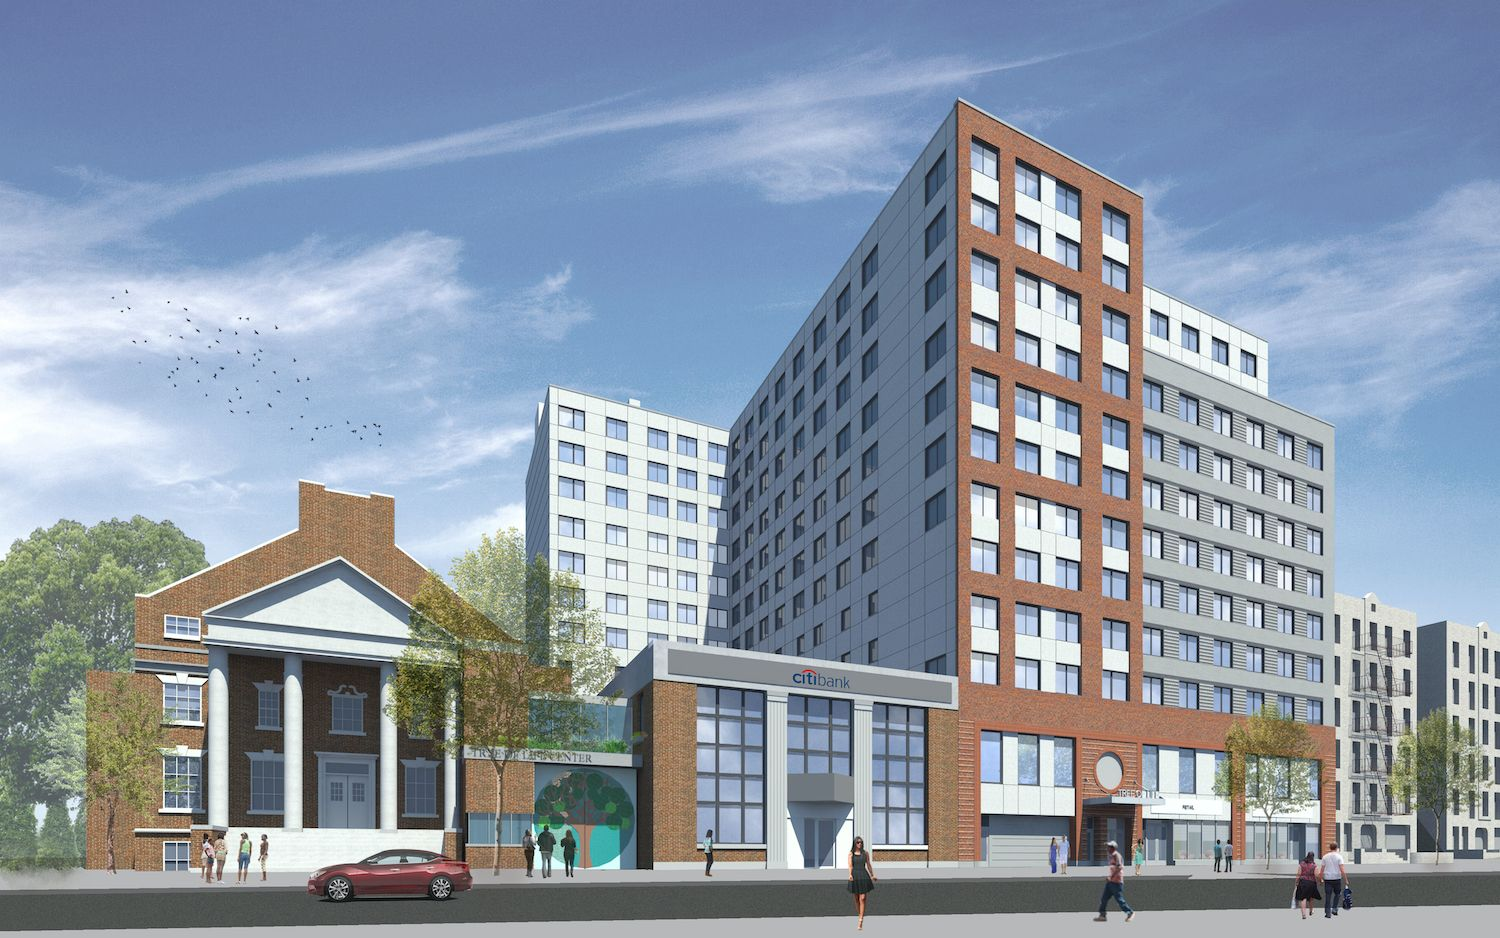 The Affordable Housing Lottery Has Launched For Tree Of Life A 12 Story Mixed Use Building At 89 46 164t In 2021 Mix Use Building Commercial Architecture Architecture